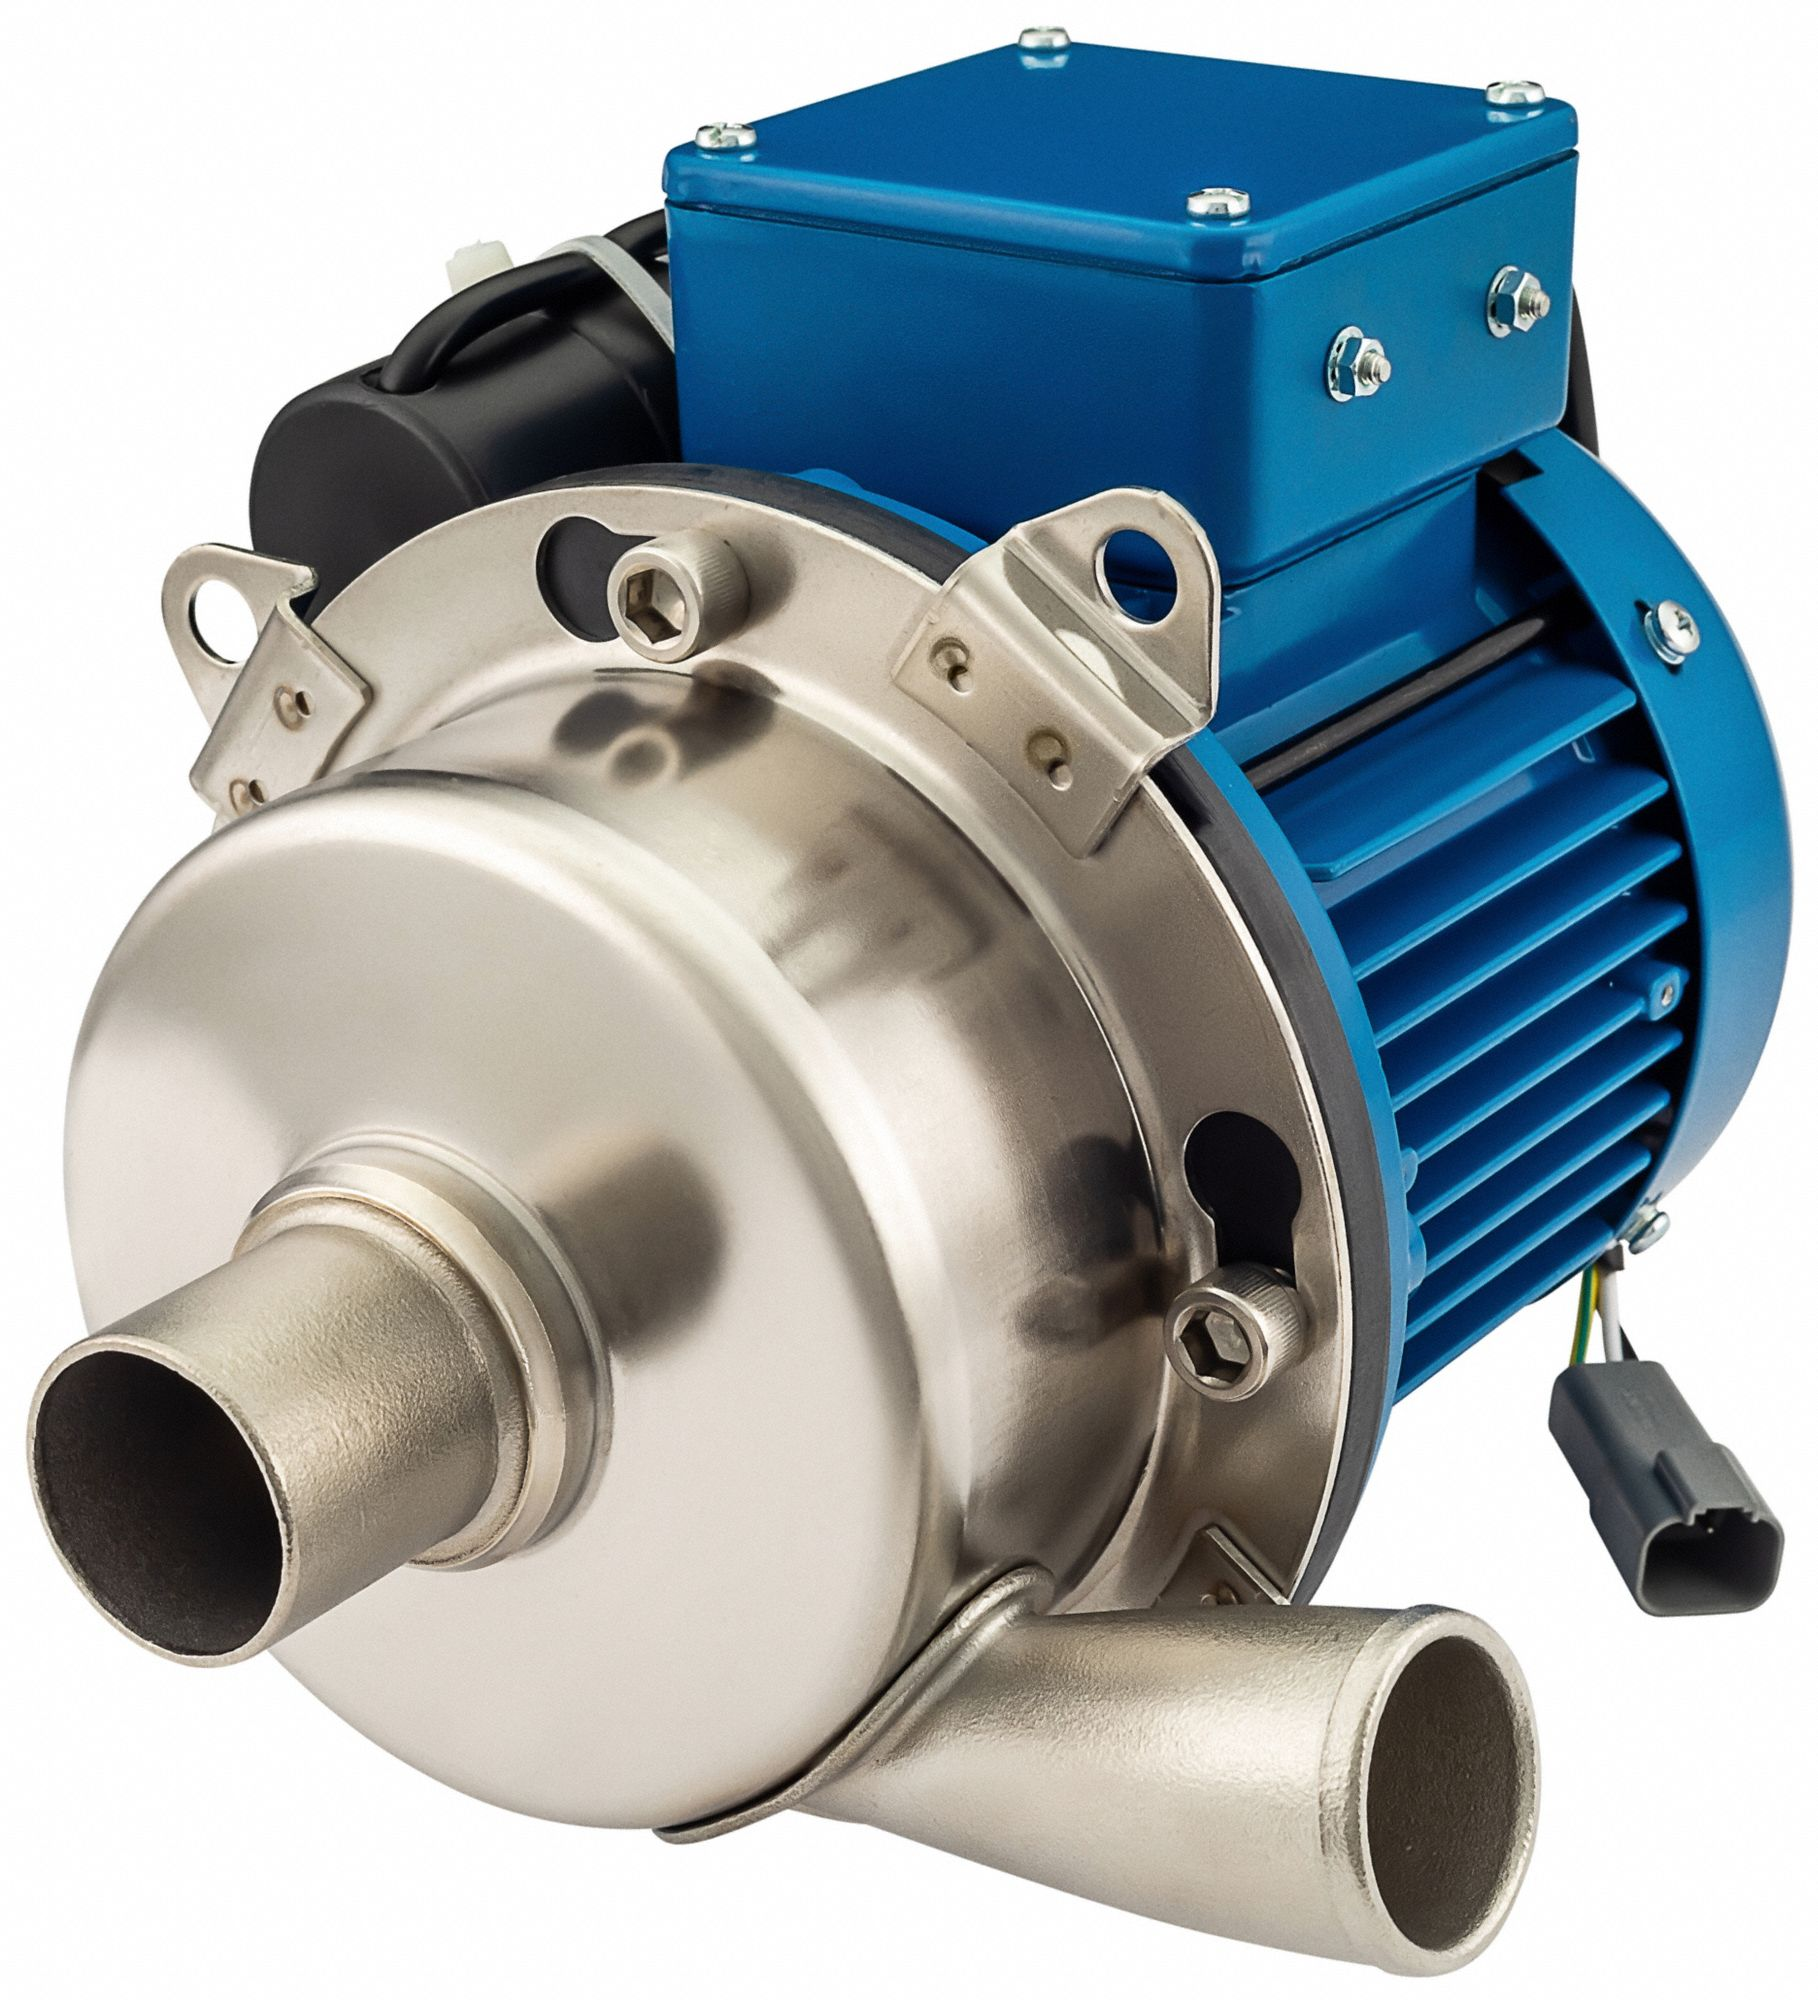 115/230VAC Totally Enclosed Fan-Cooled Straight Center Discharge Pump, 1-Phase, 1.5 in barb Inlet Si